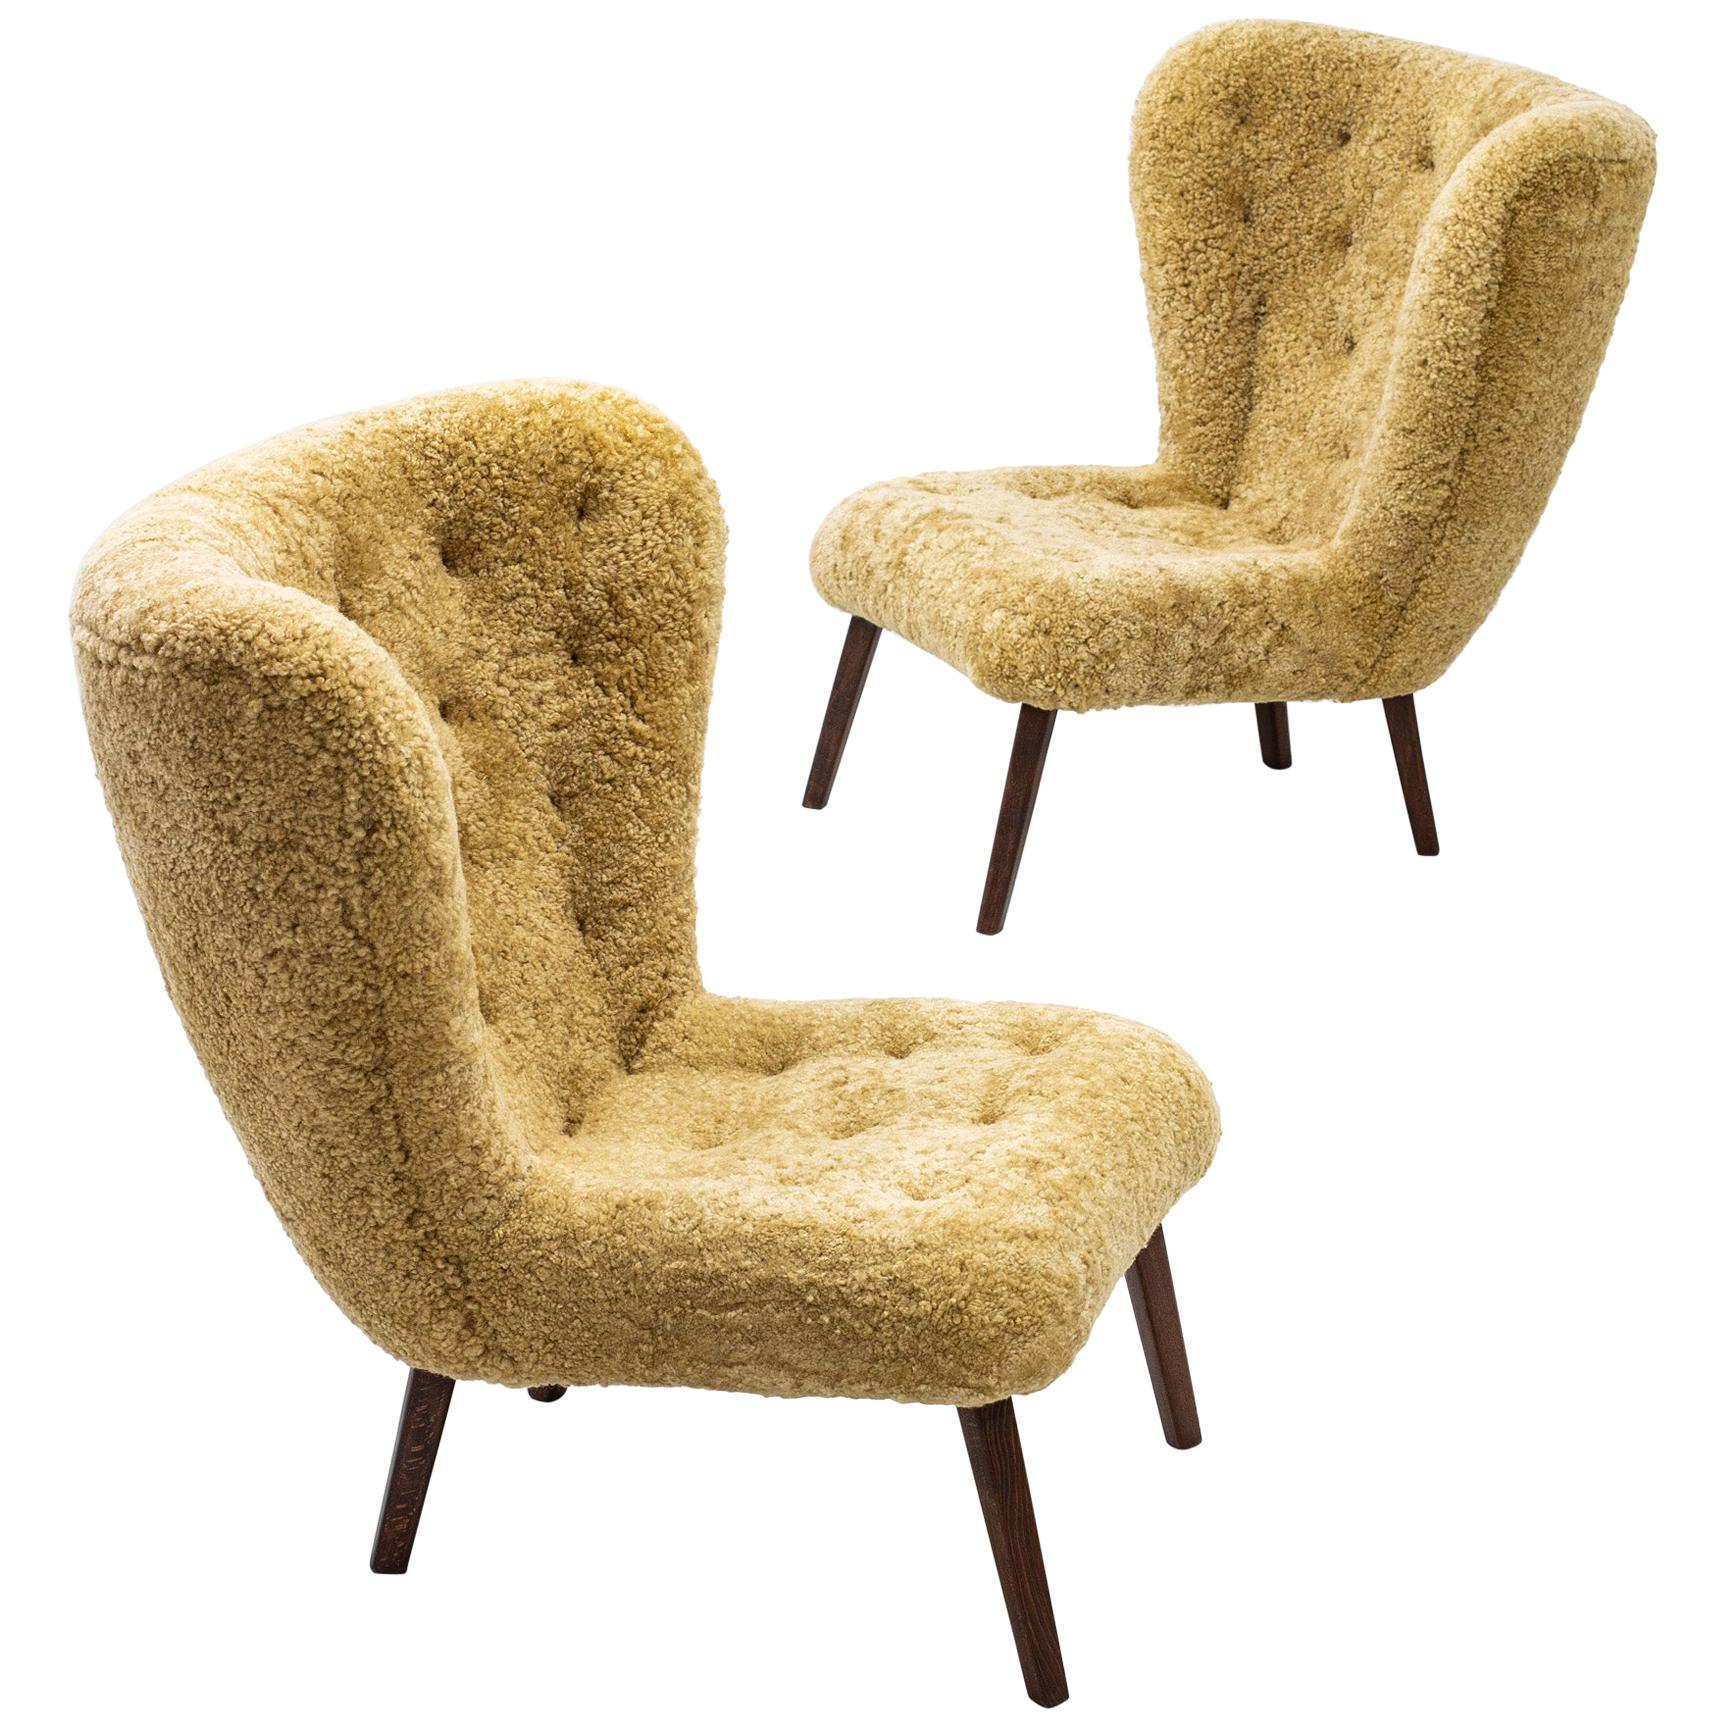 1940s Danish Modern Lounge Chairs in the Manner of Viggo Boesen